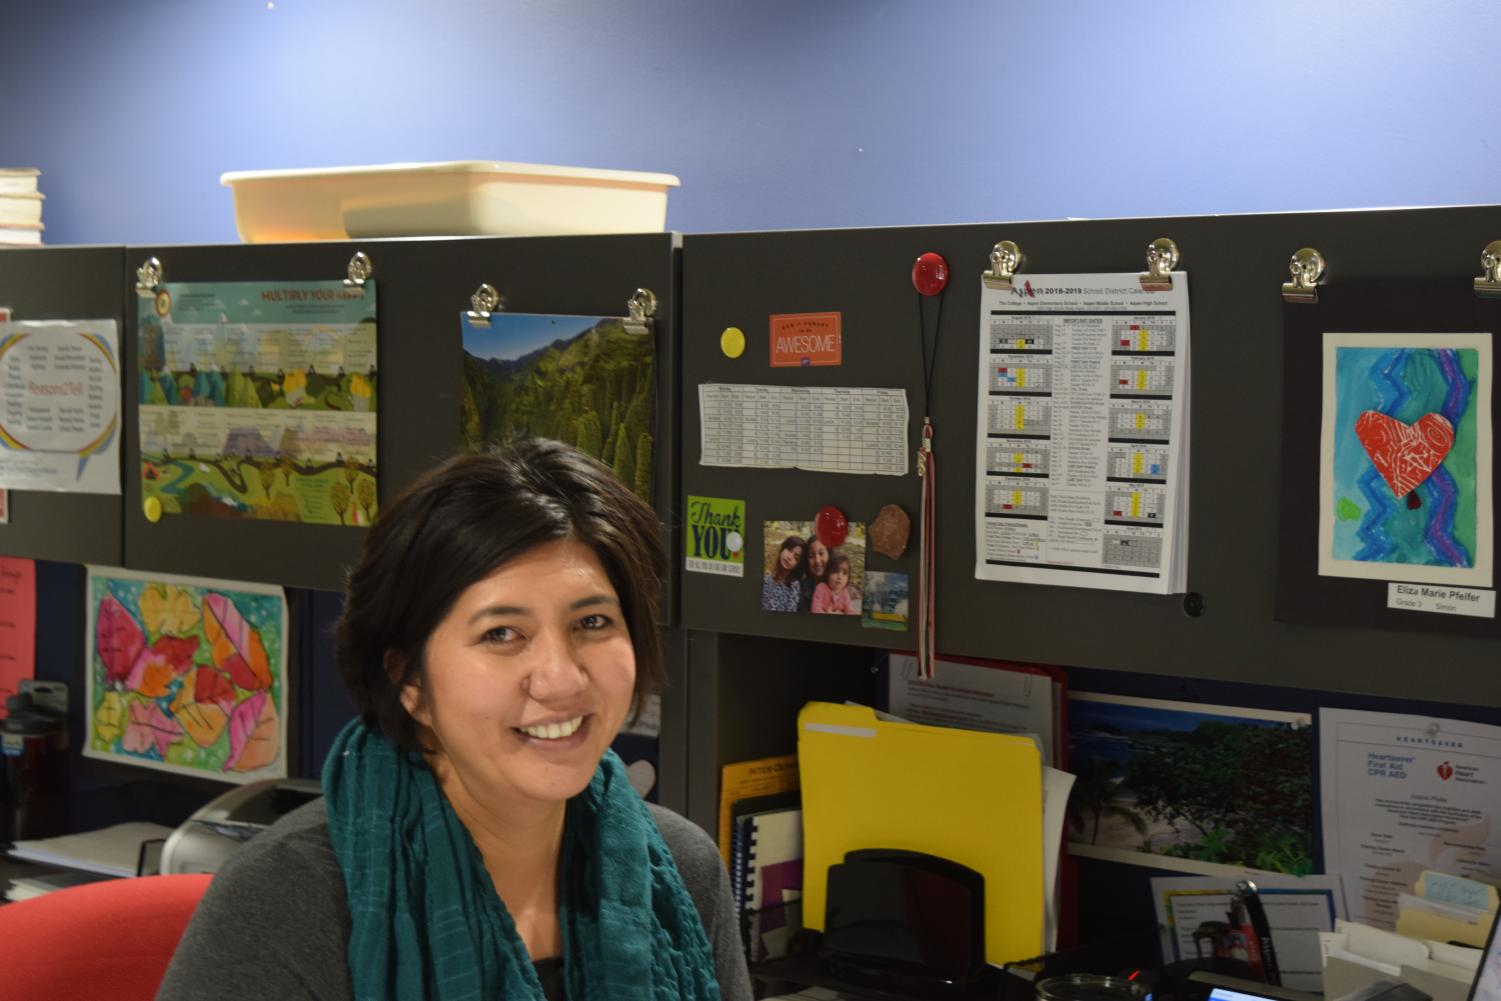 Jolaine Pfeifer smiles at her desk during a busy day at work. Her daughters' art work lines the cabinet behind her.